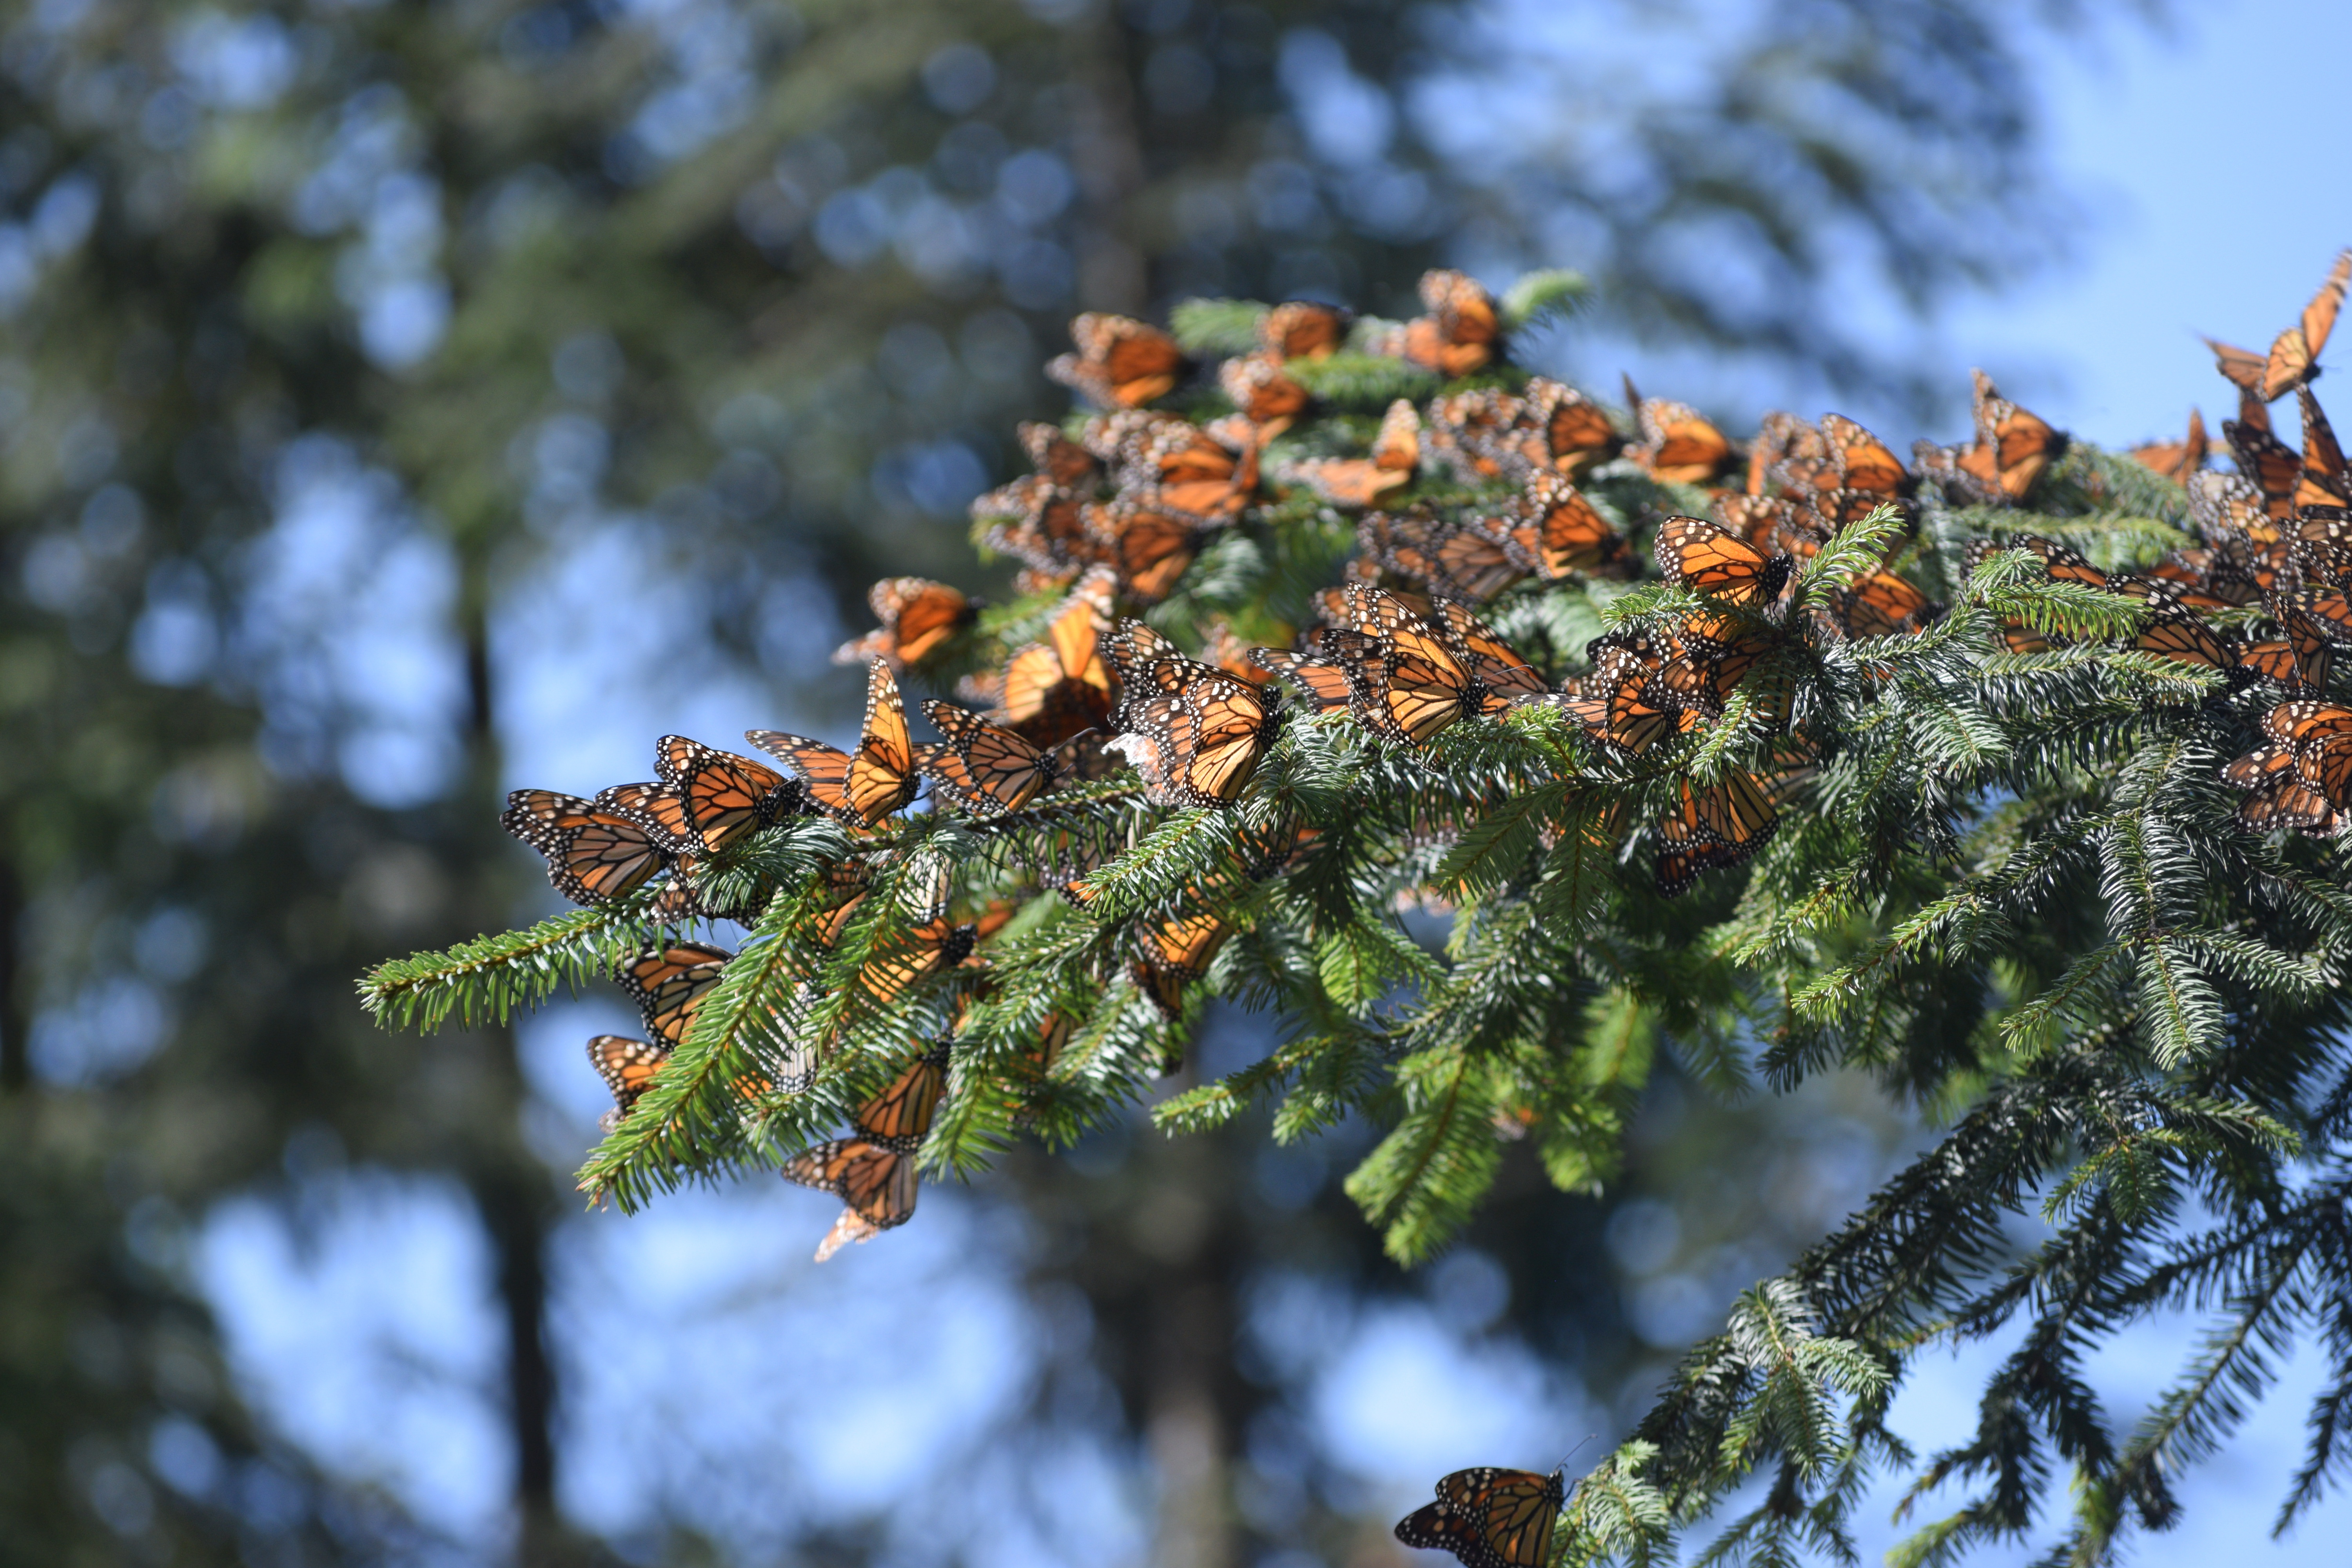 Bright orange monarchs cluster together on a deep green pine branch.